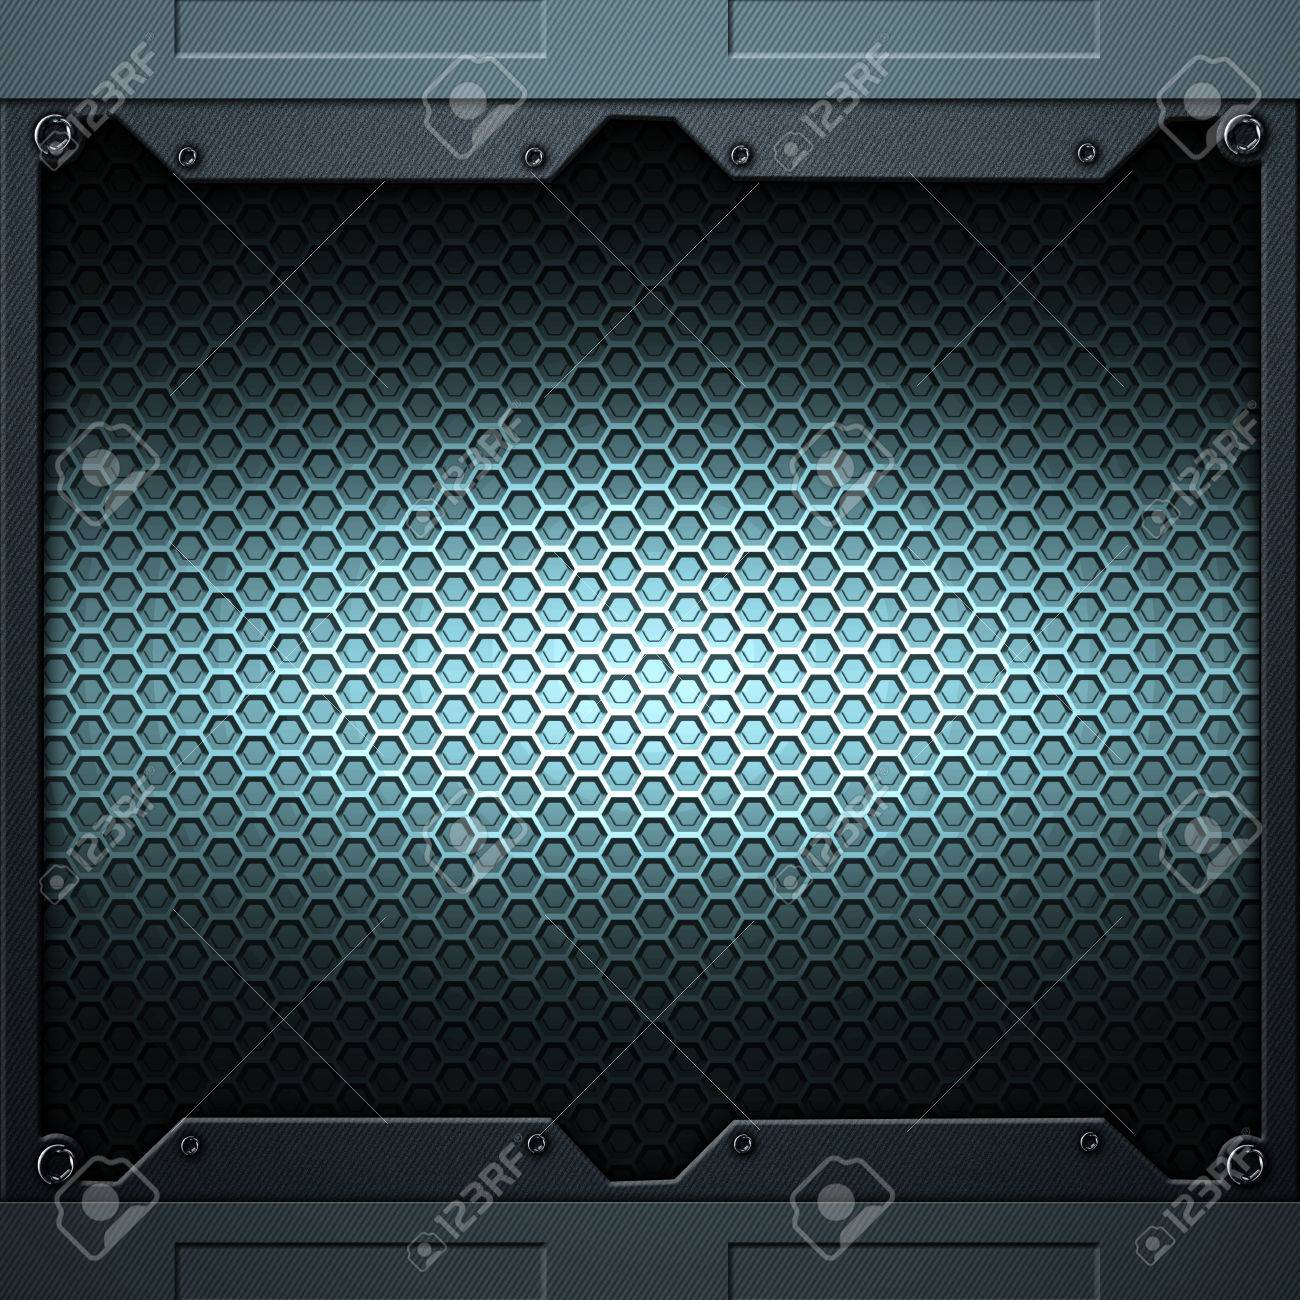 sci fi wall texture. Illustration - Scifi Wall. Carbon Fiber Wall And Rivet. Metal Background Texture 3d Illustration. Technology Concept. Sci Fi